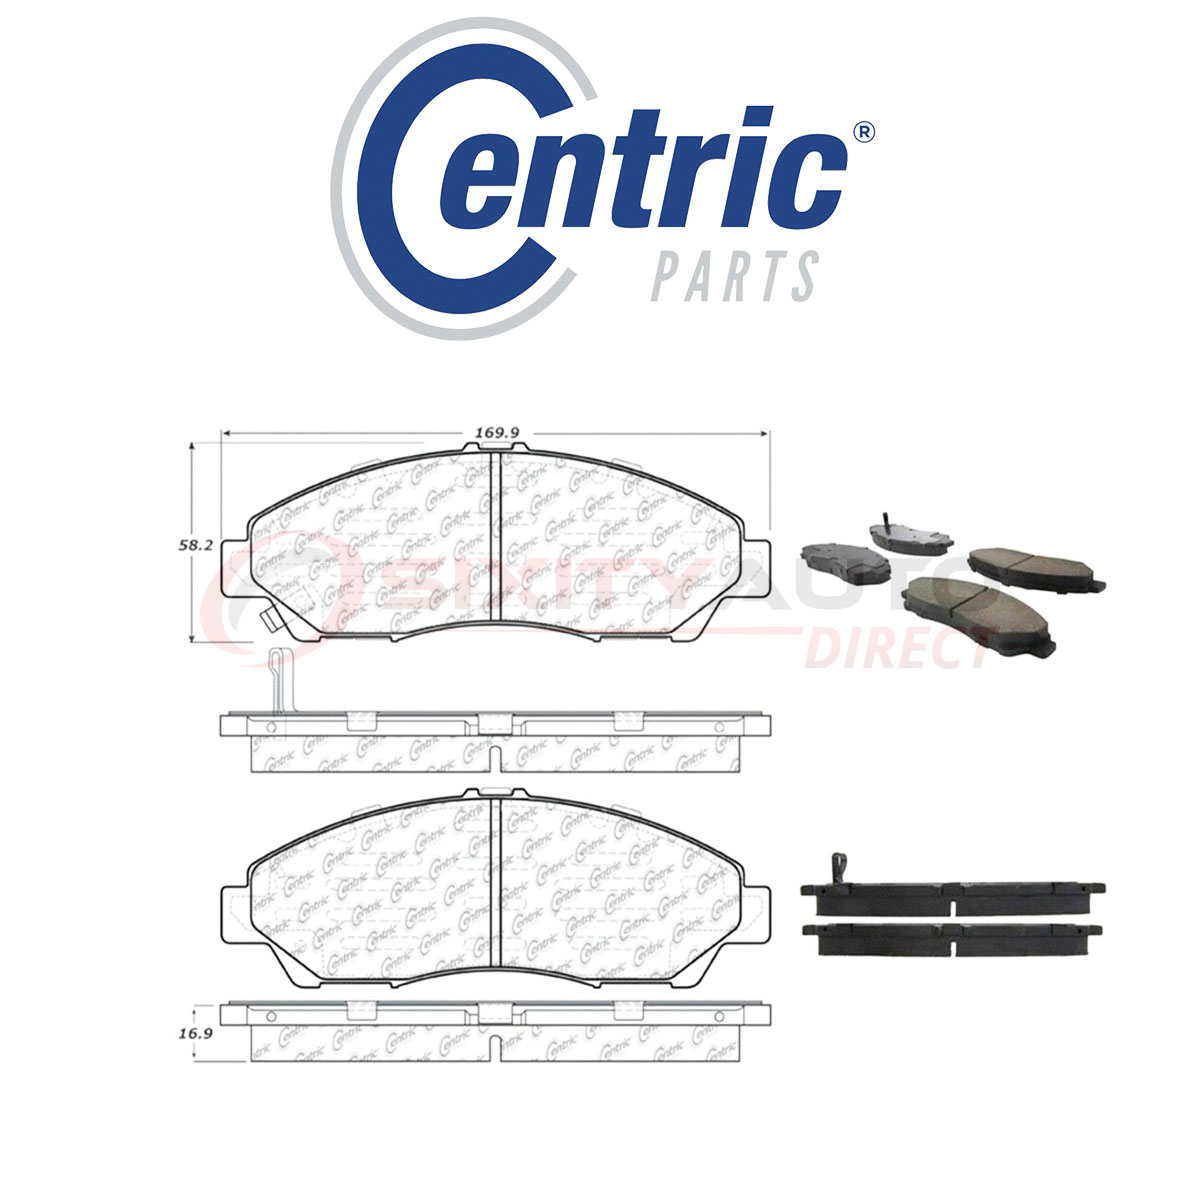 Centric C-TEK Ceramic Disc Brake Pads For 2014-2017 Acura